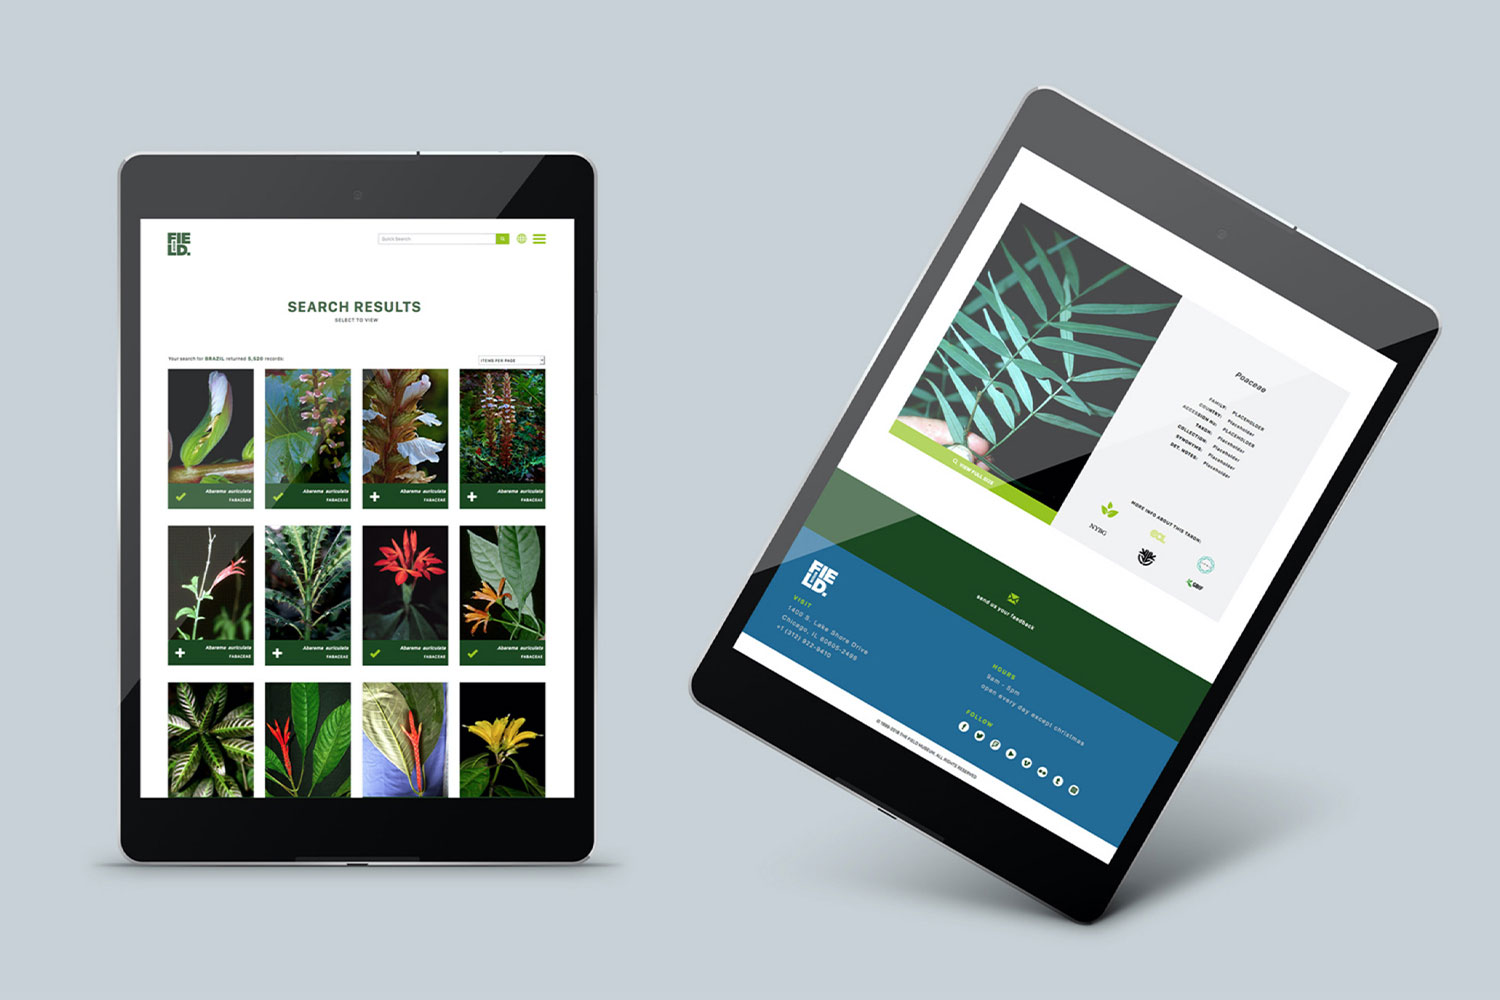 Landing pages for the search results and specimen details